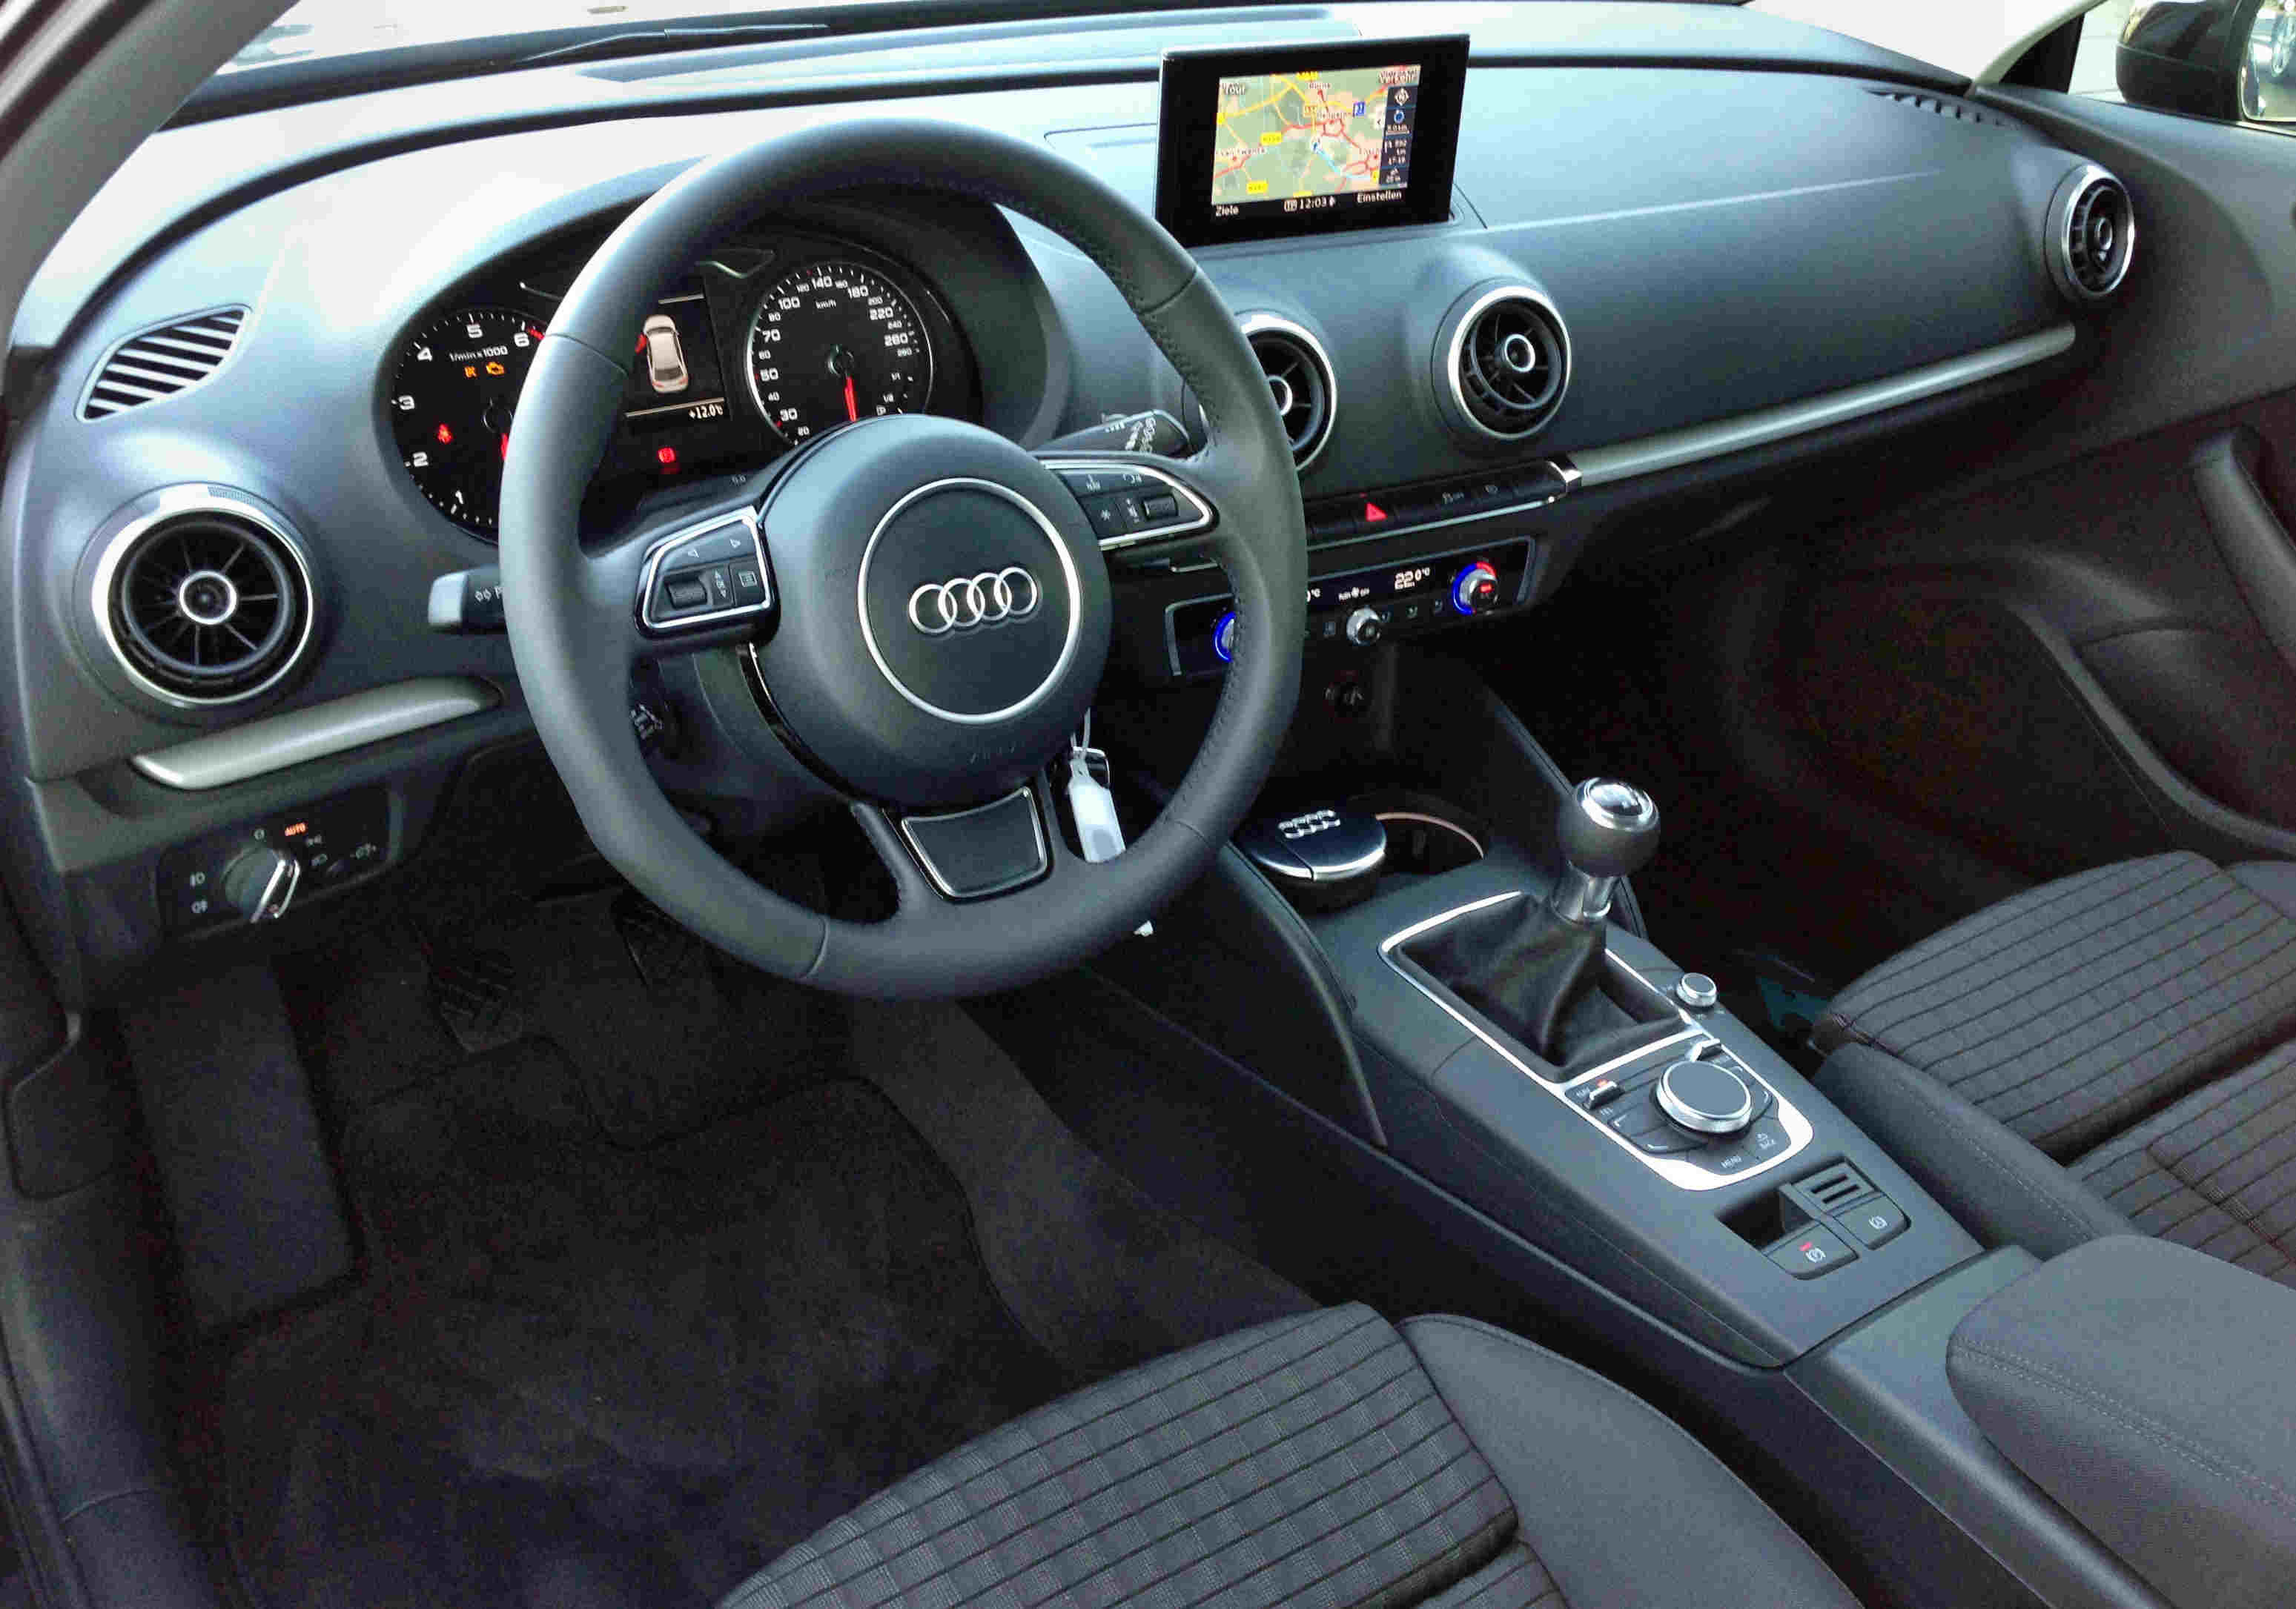 audi a3 limousine s line 2013 eu neuwagen reimport direktimport schweiz ambition 2 0 tdi 150 ps. Black Bedroom Furniture Sets. Home Design Ideas